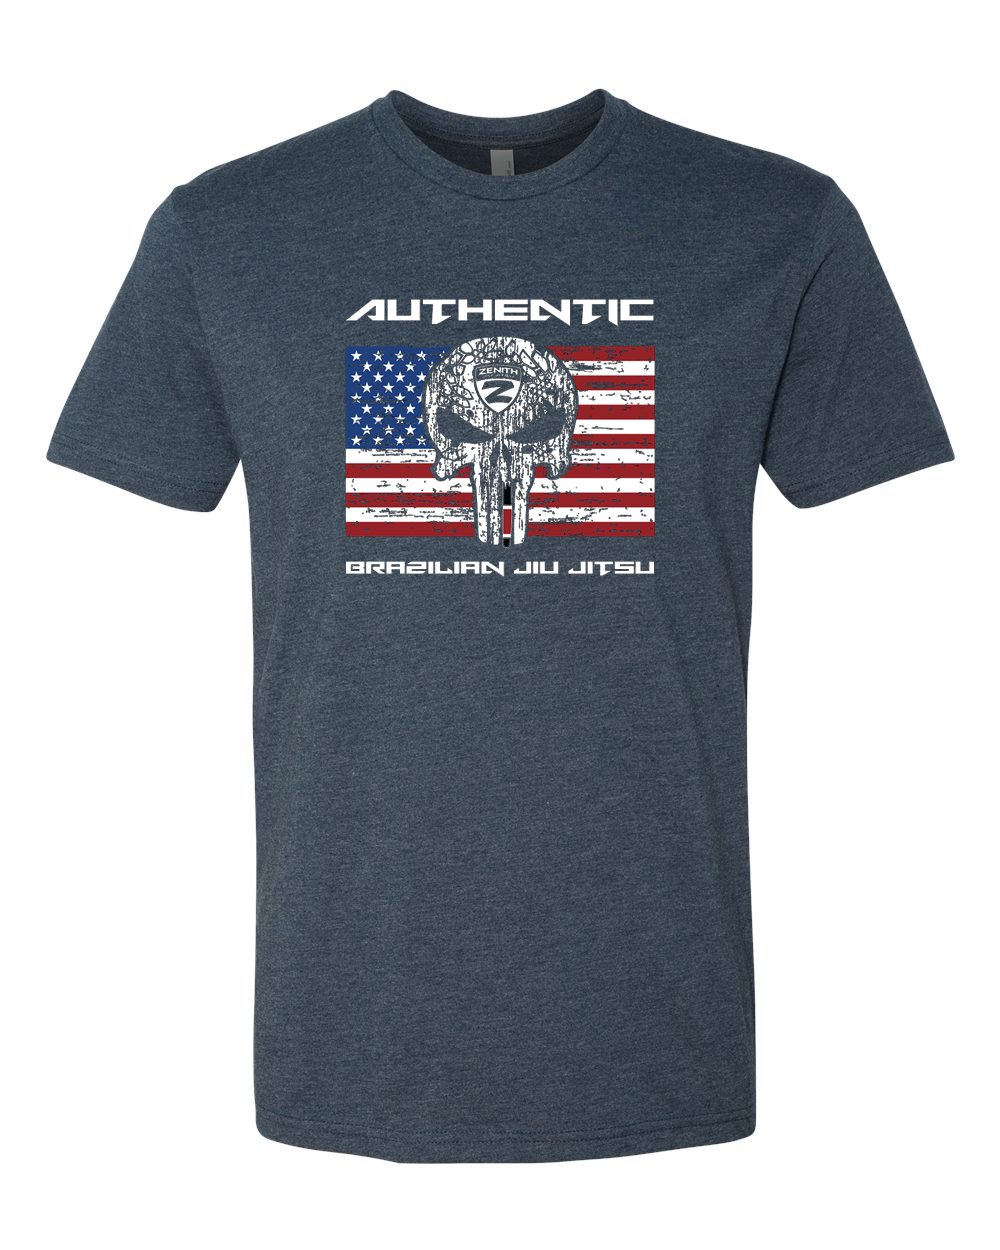 Authentic Brazilian Jiu Jitsu Mens Flag Shirt